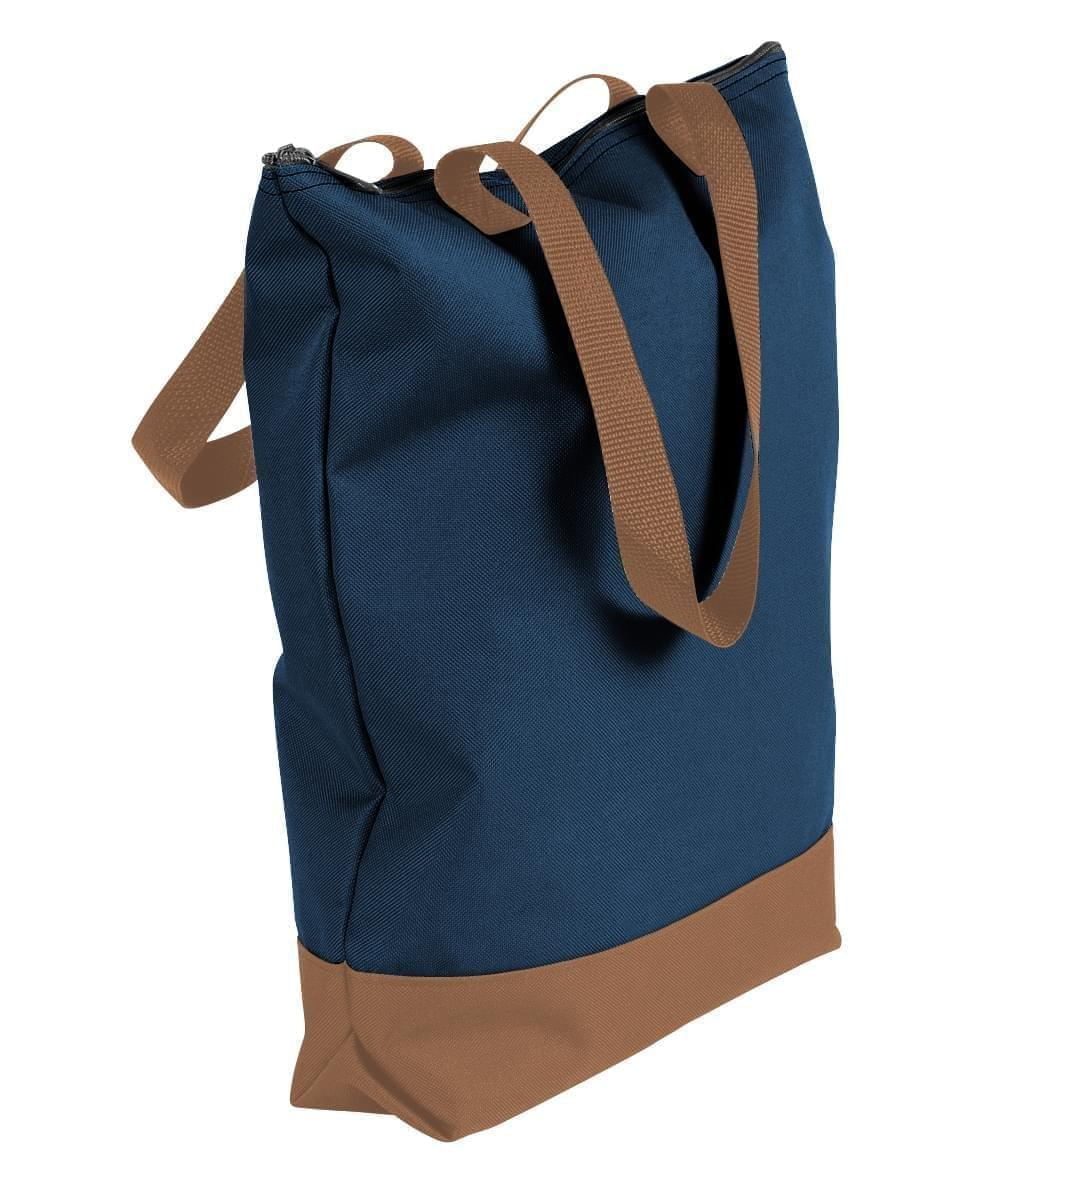 USA Made Canvas Portfolio Tote Bags, Navy-Bronze, 1AAMX1UACO